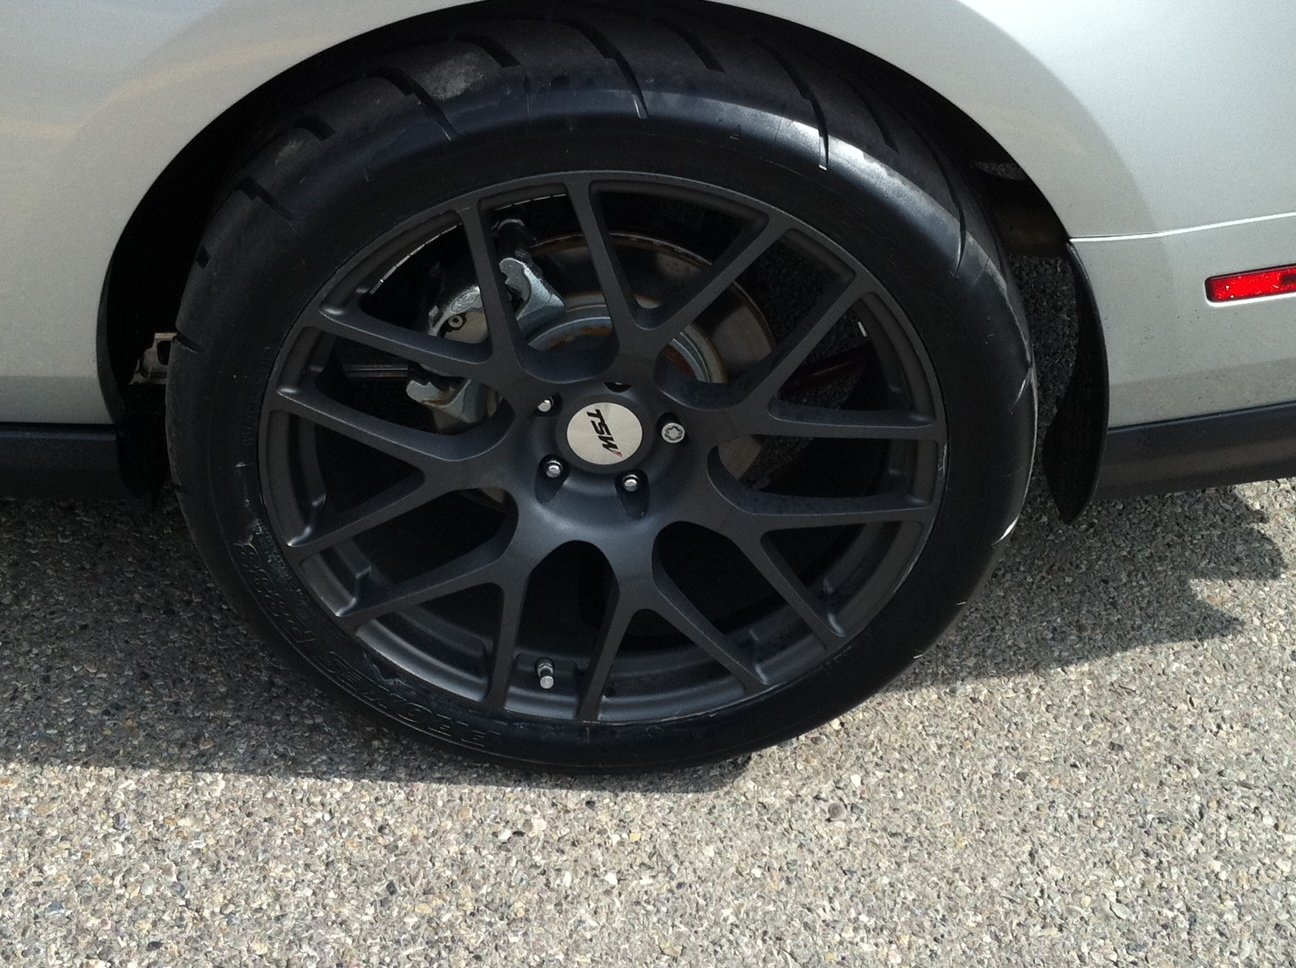 Anyone running 295/(30 or 35)/20 on 20x10 wheels with 40mm ...